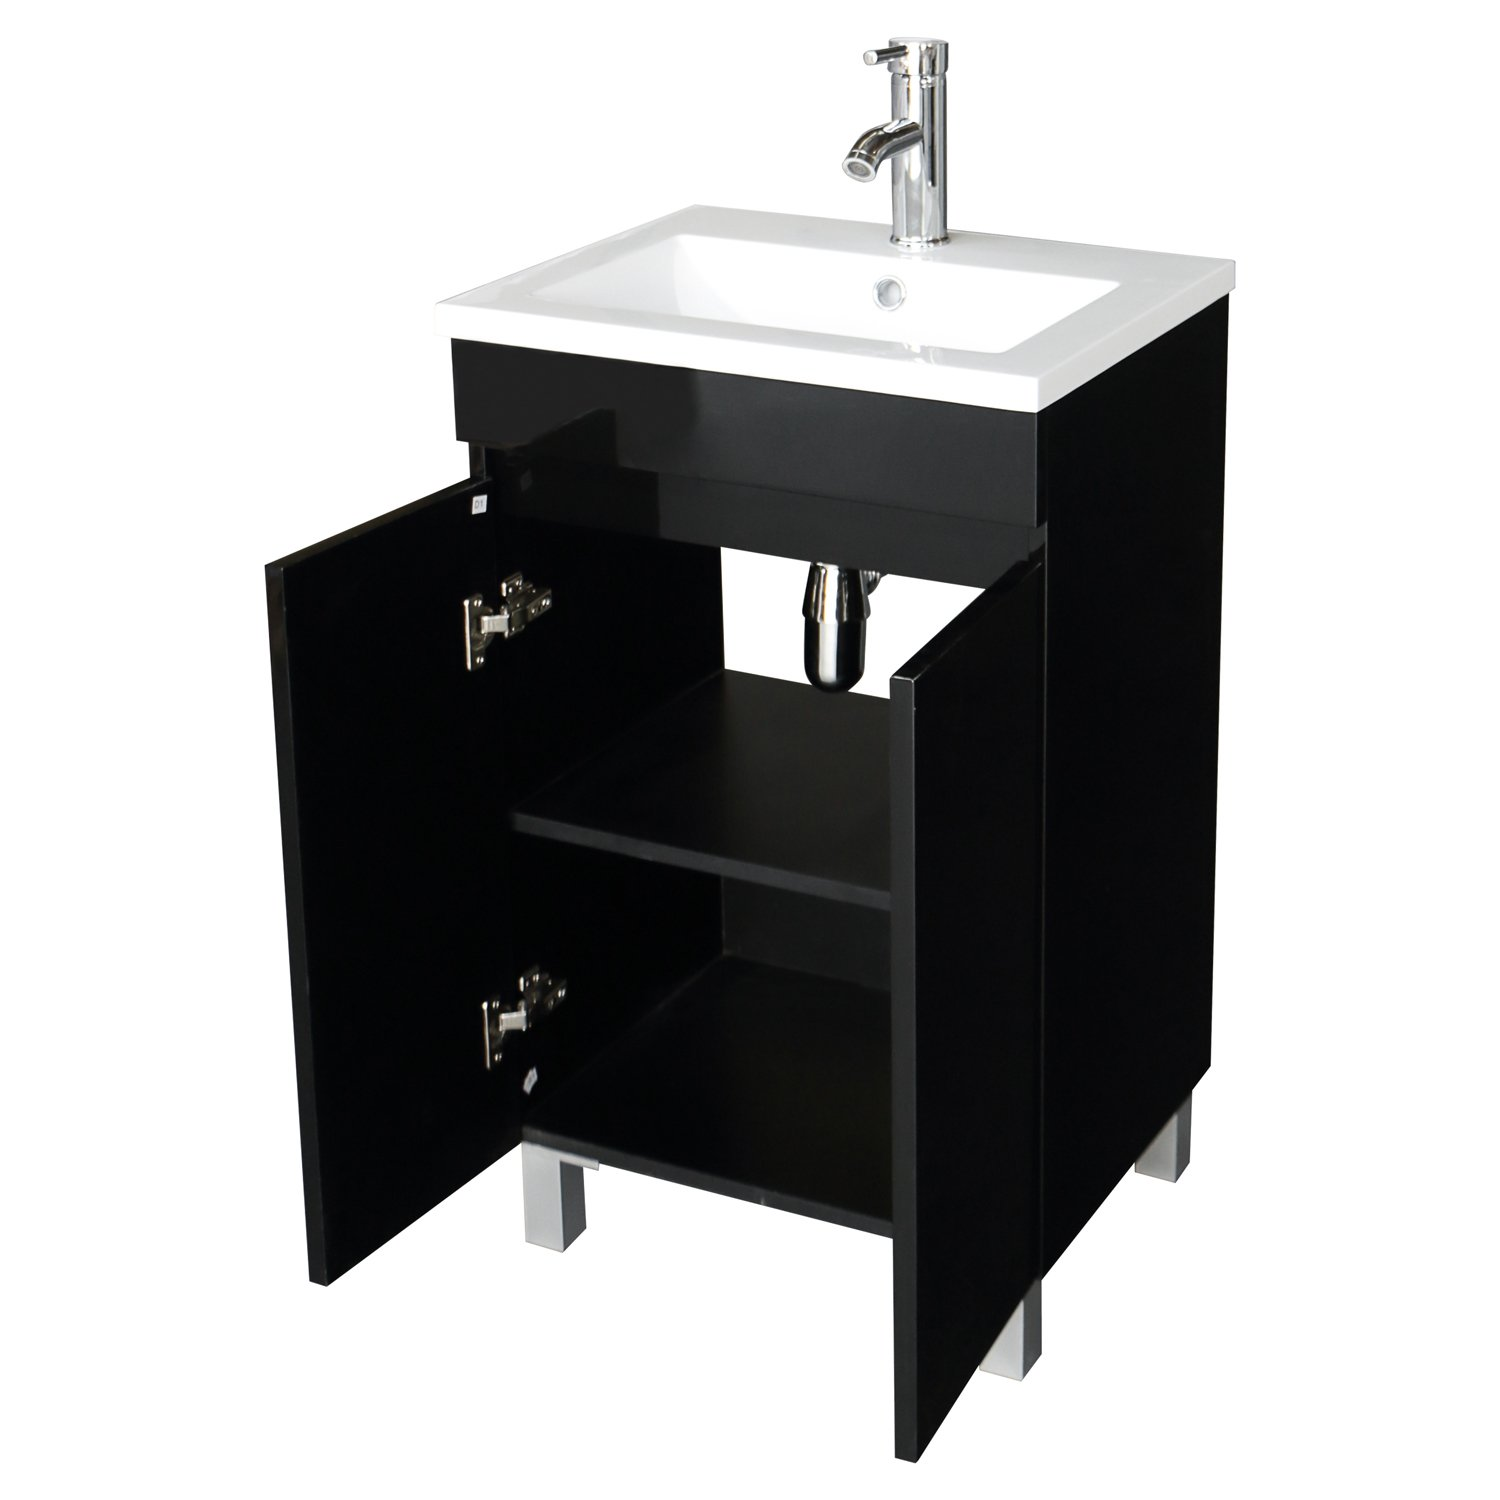 Sliverylake 20 Inch Free Standing Bathroom Vanity Cabinet with 2